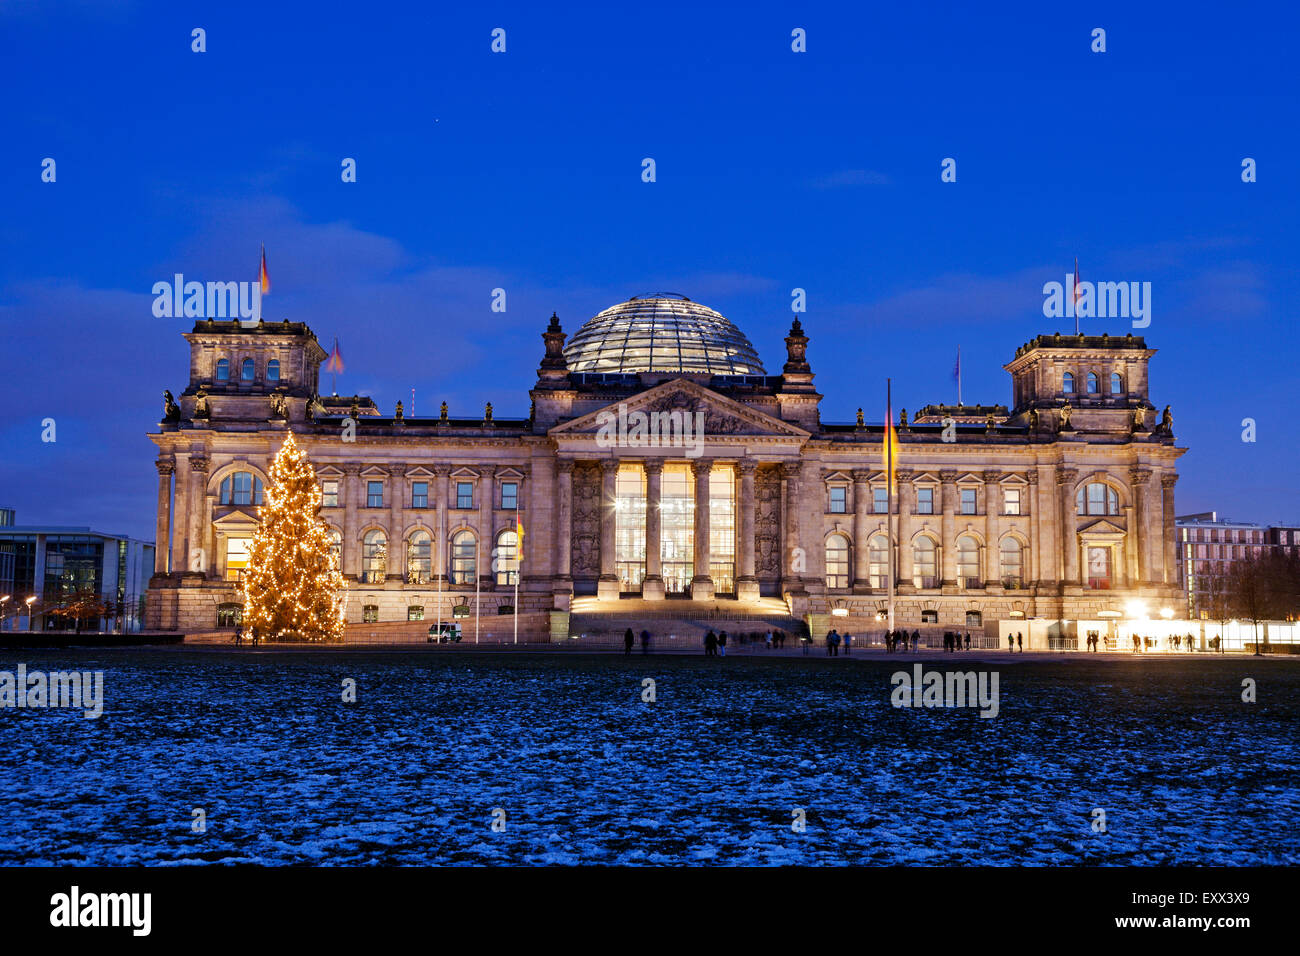 Illuminated Bundestag building and snowy lawn - Stock Image